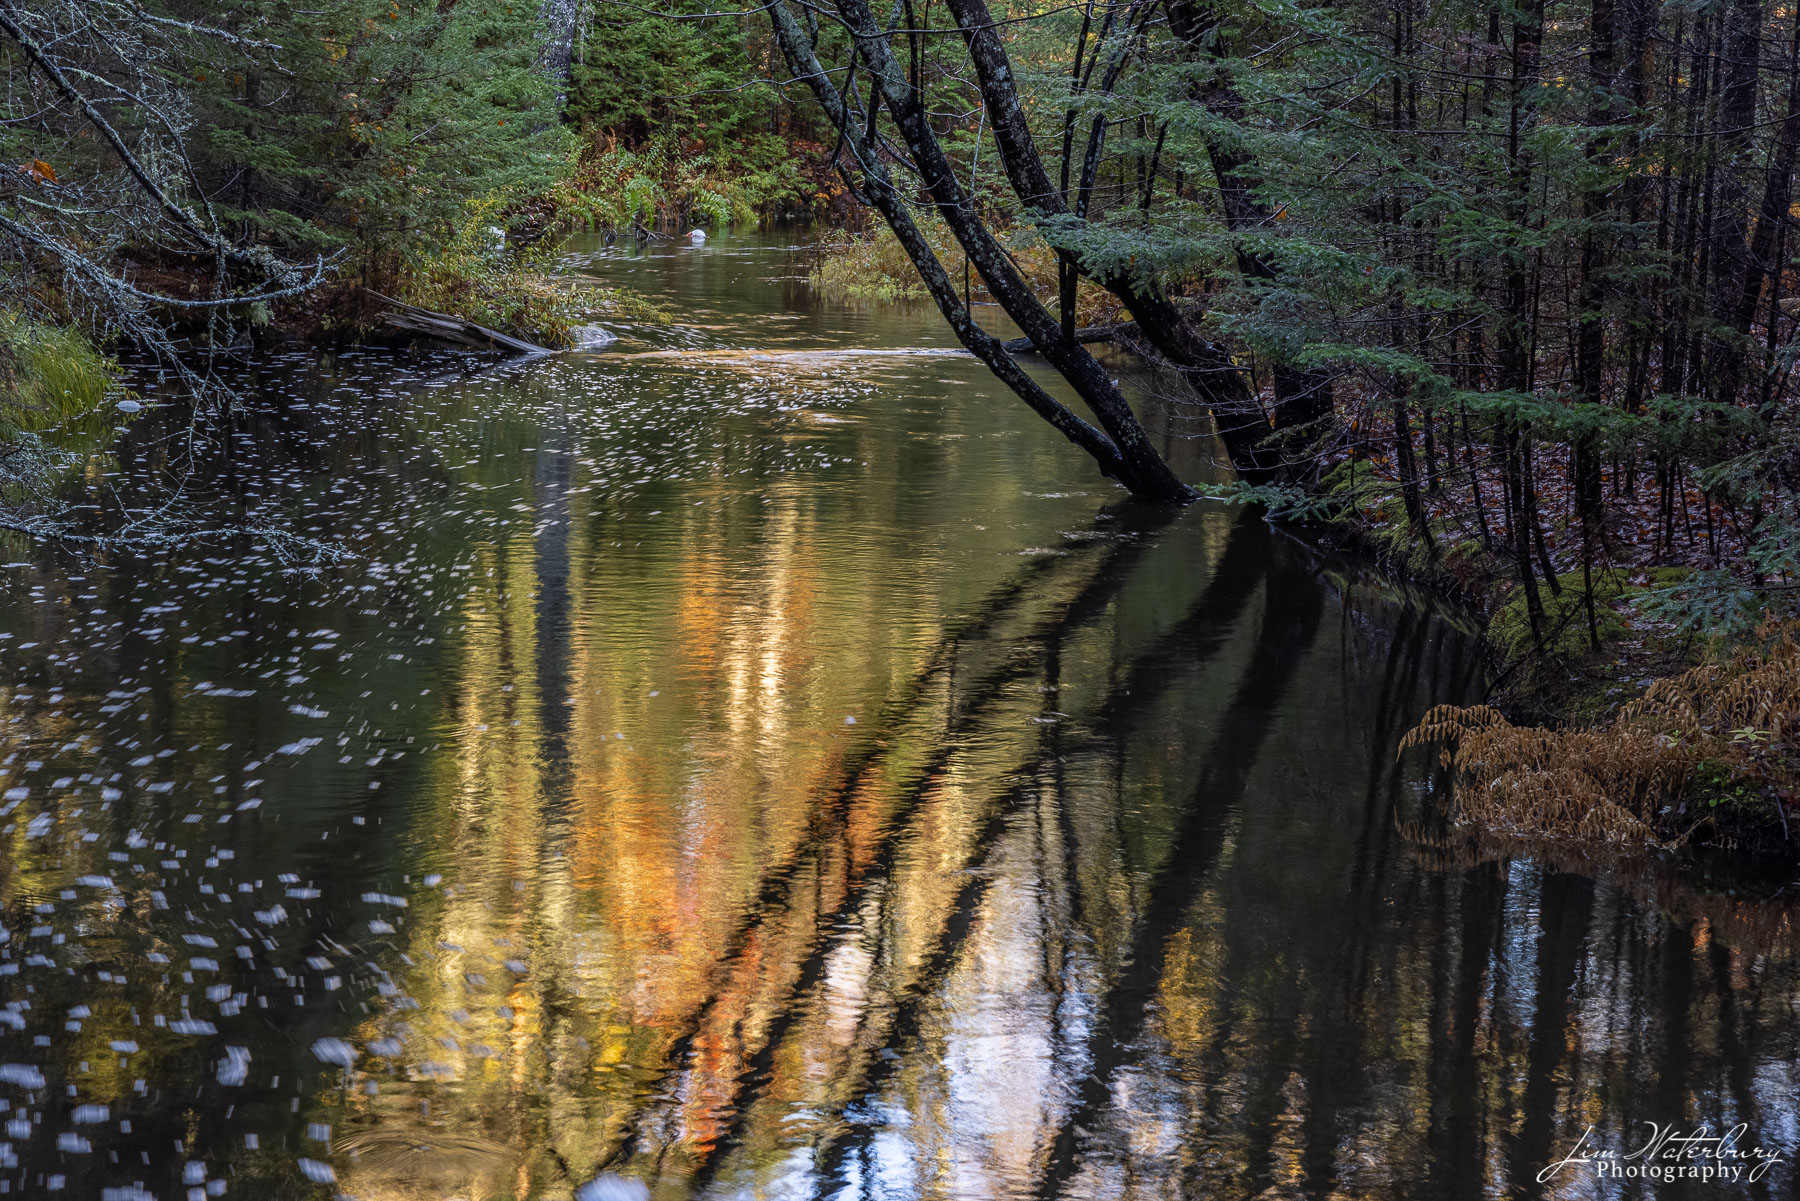 Trees and reflections in the Goose River, near Cushing, Maine.